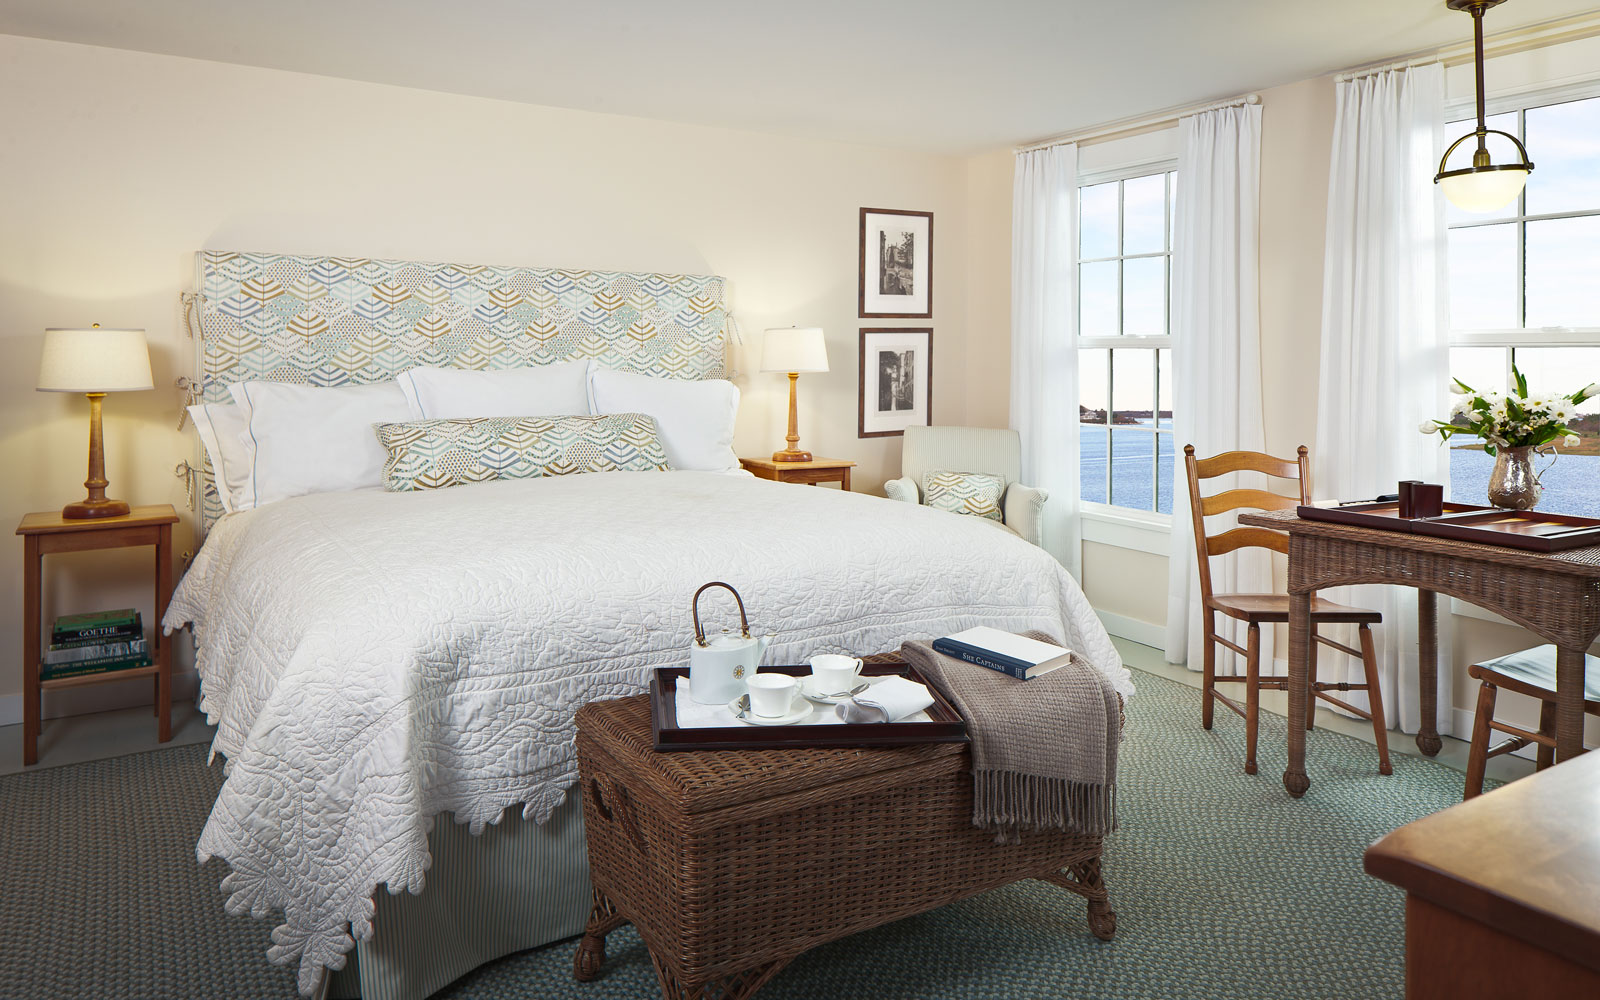 6. Weekapaug Inn in Rhode Island